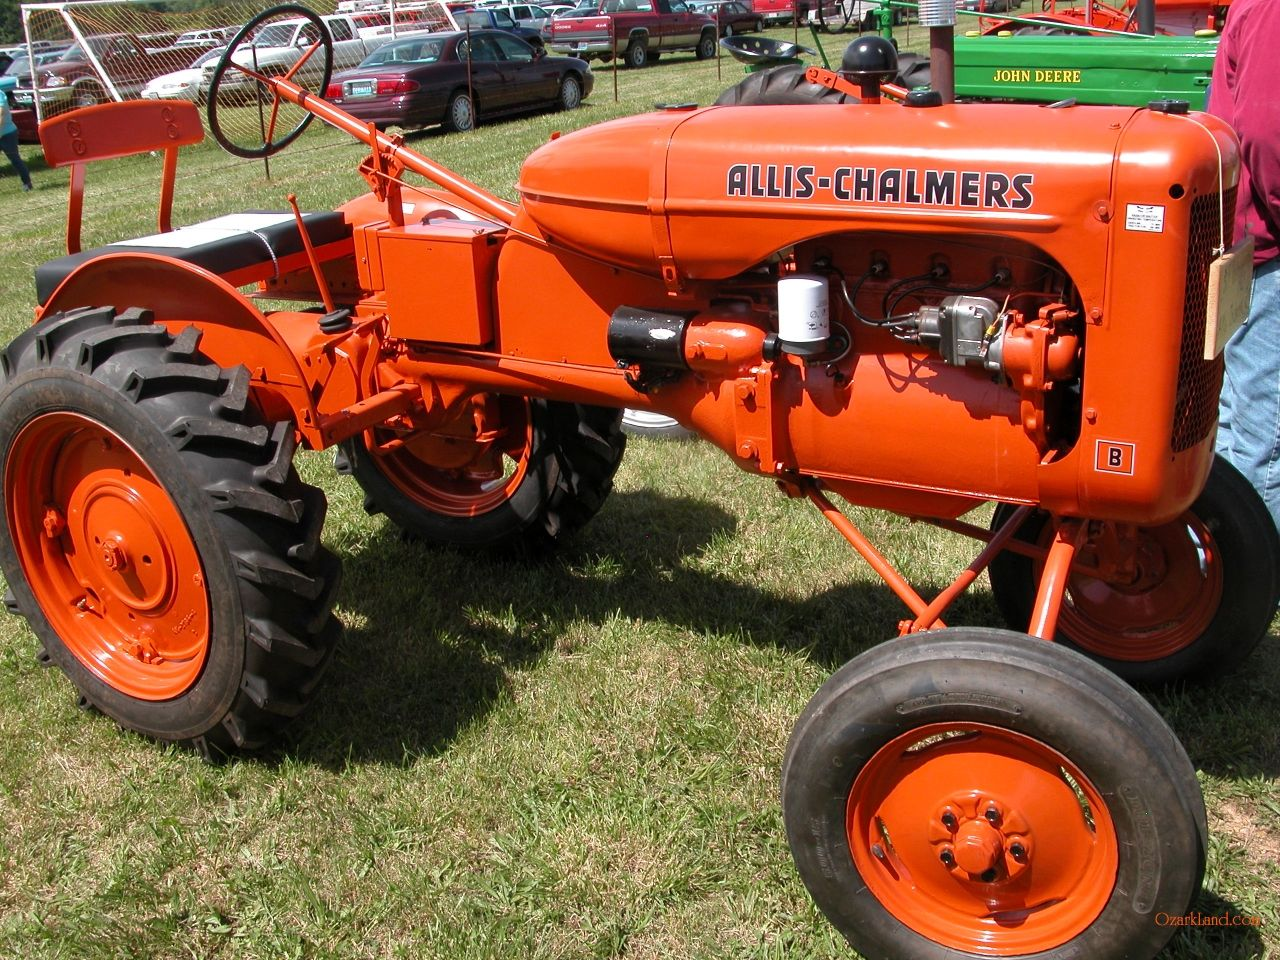 Allis Chalmers Model B Wiring Diagram Electric Meter Box Uk Google Search Tractors Made In Great